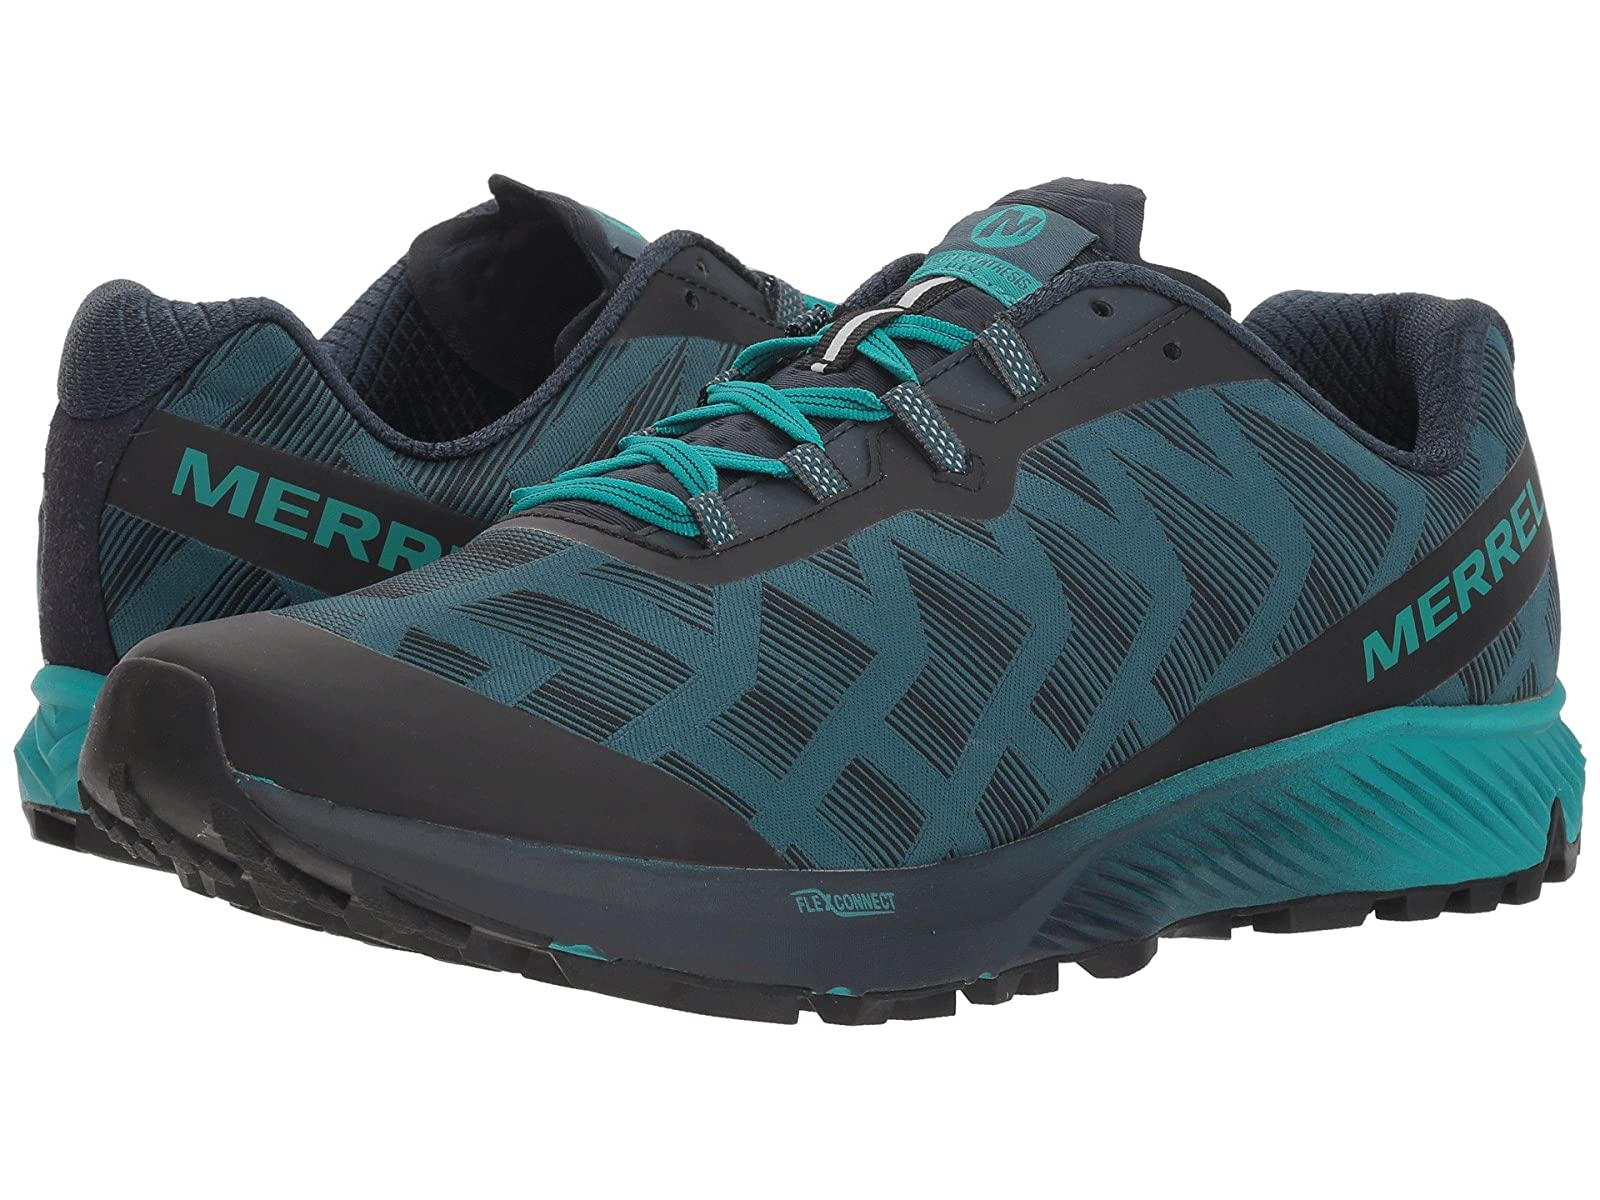 Merrell Agility Synthesis FlexAtmospheric grades have affordable shoes